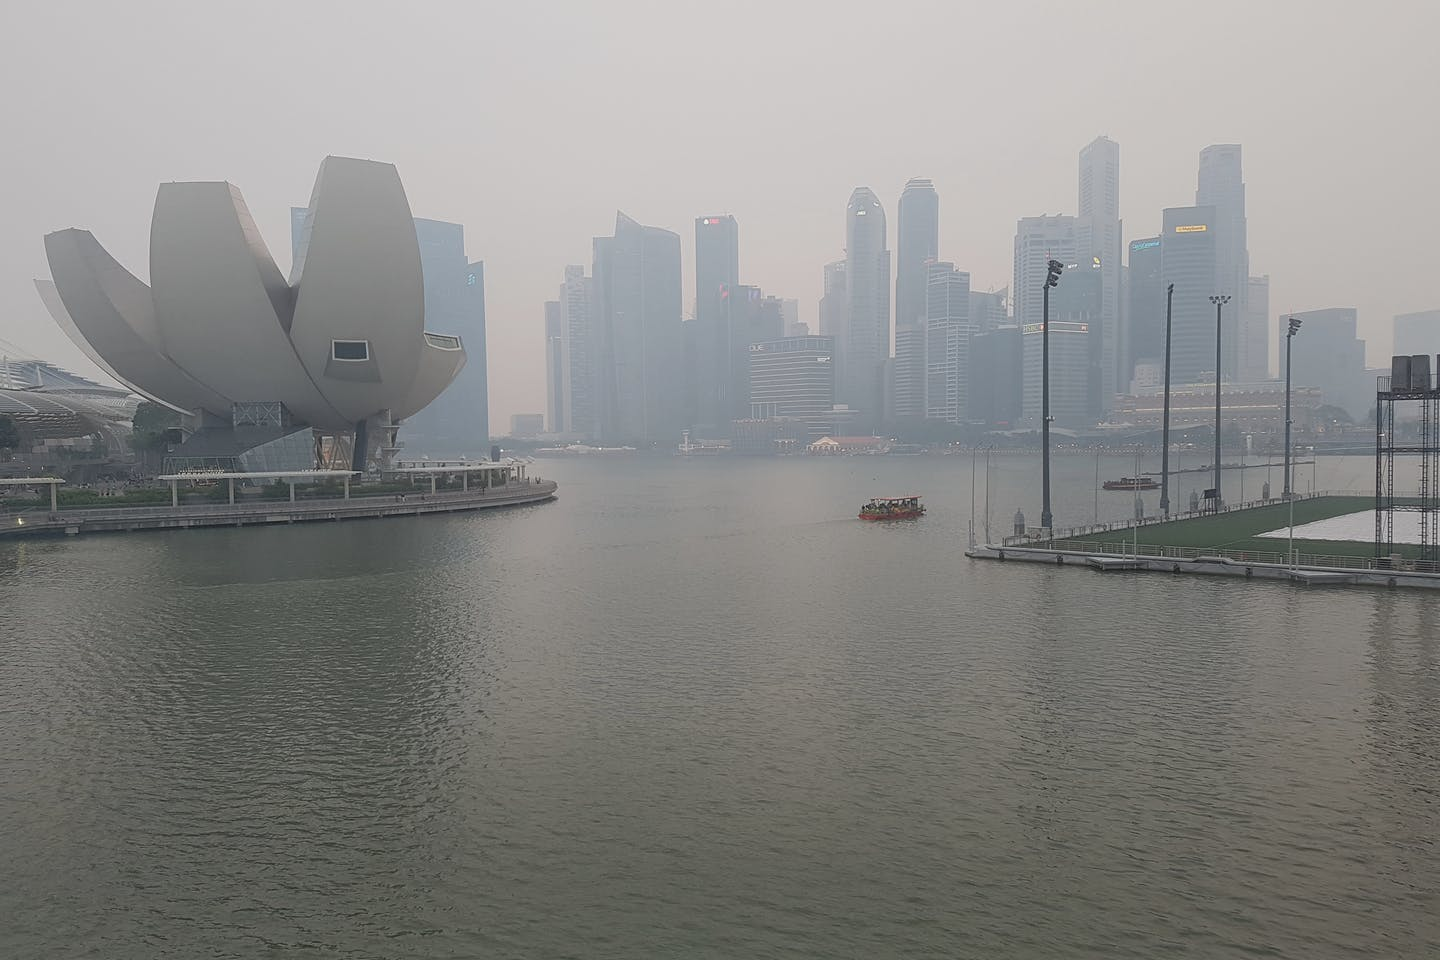 Haze over Singapore's skyline, September 2019